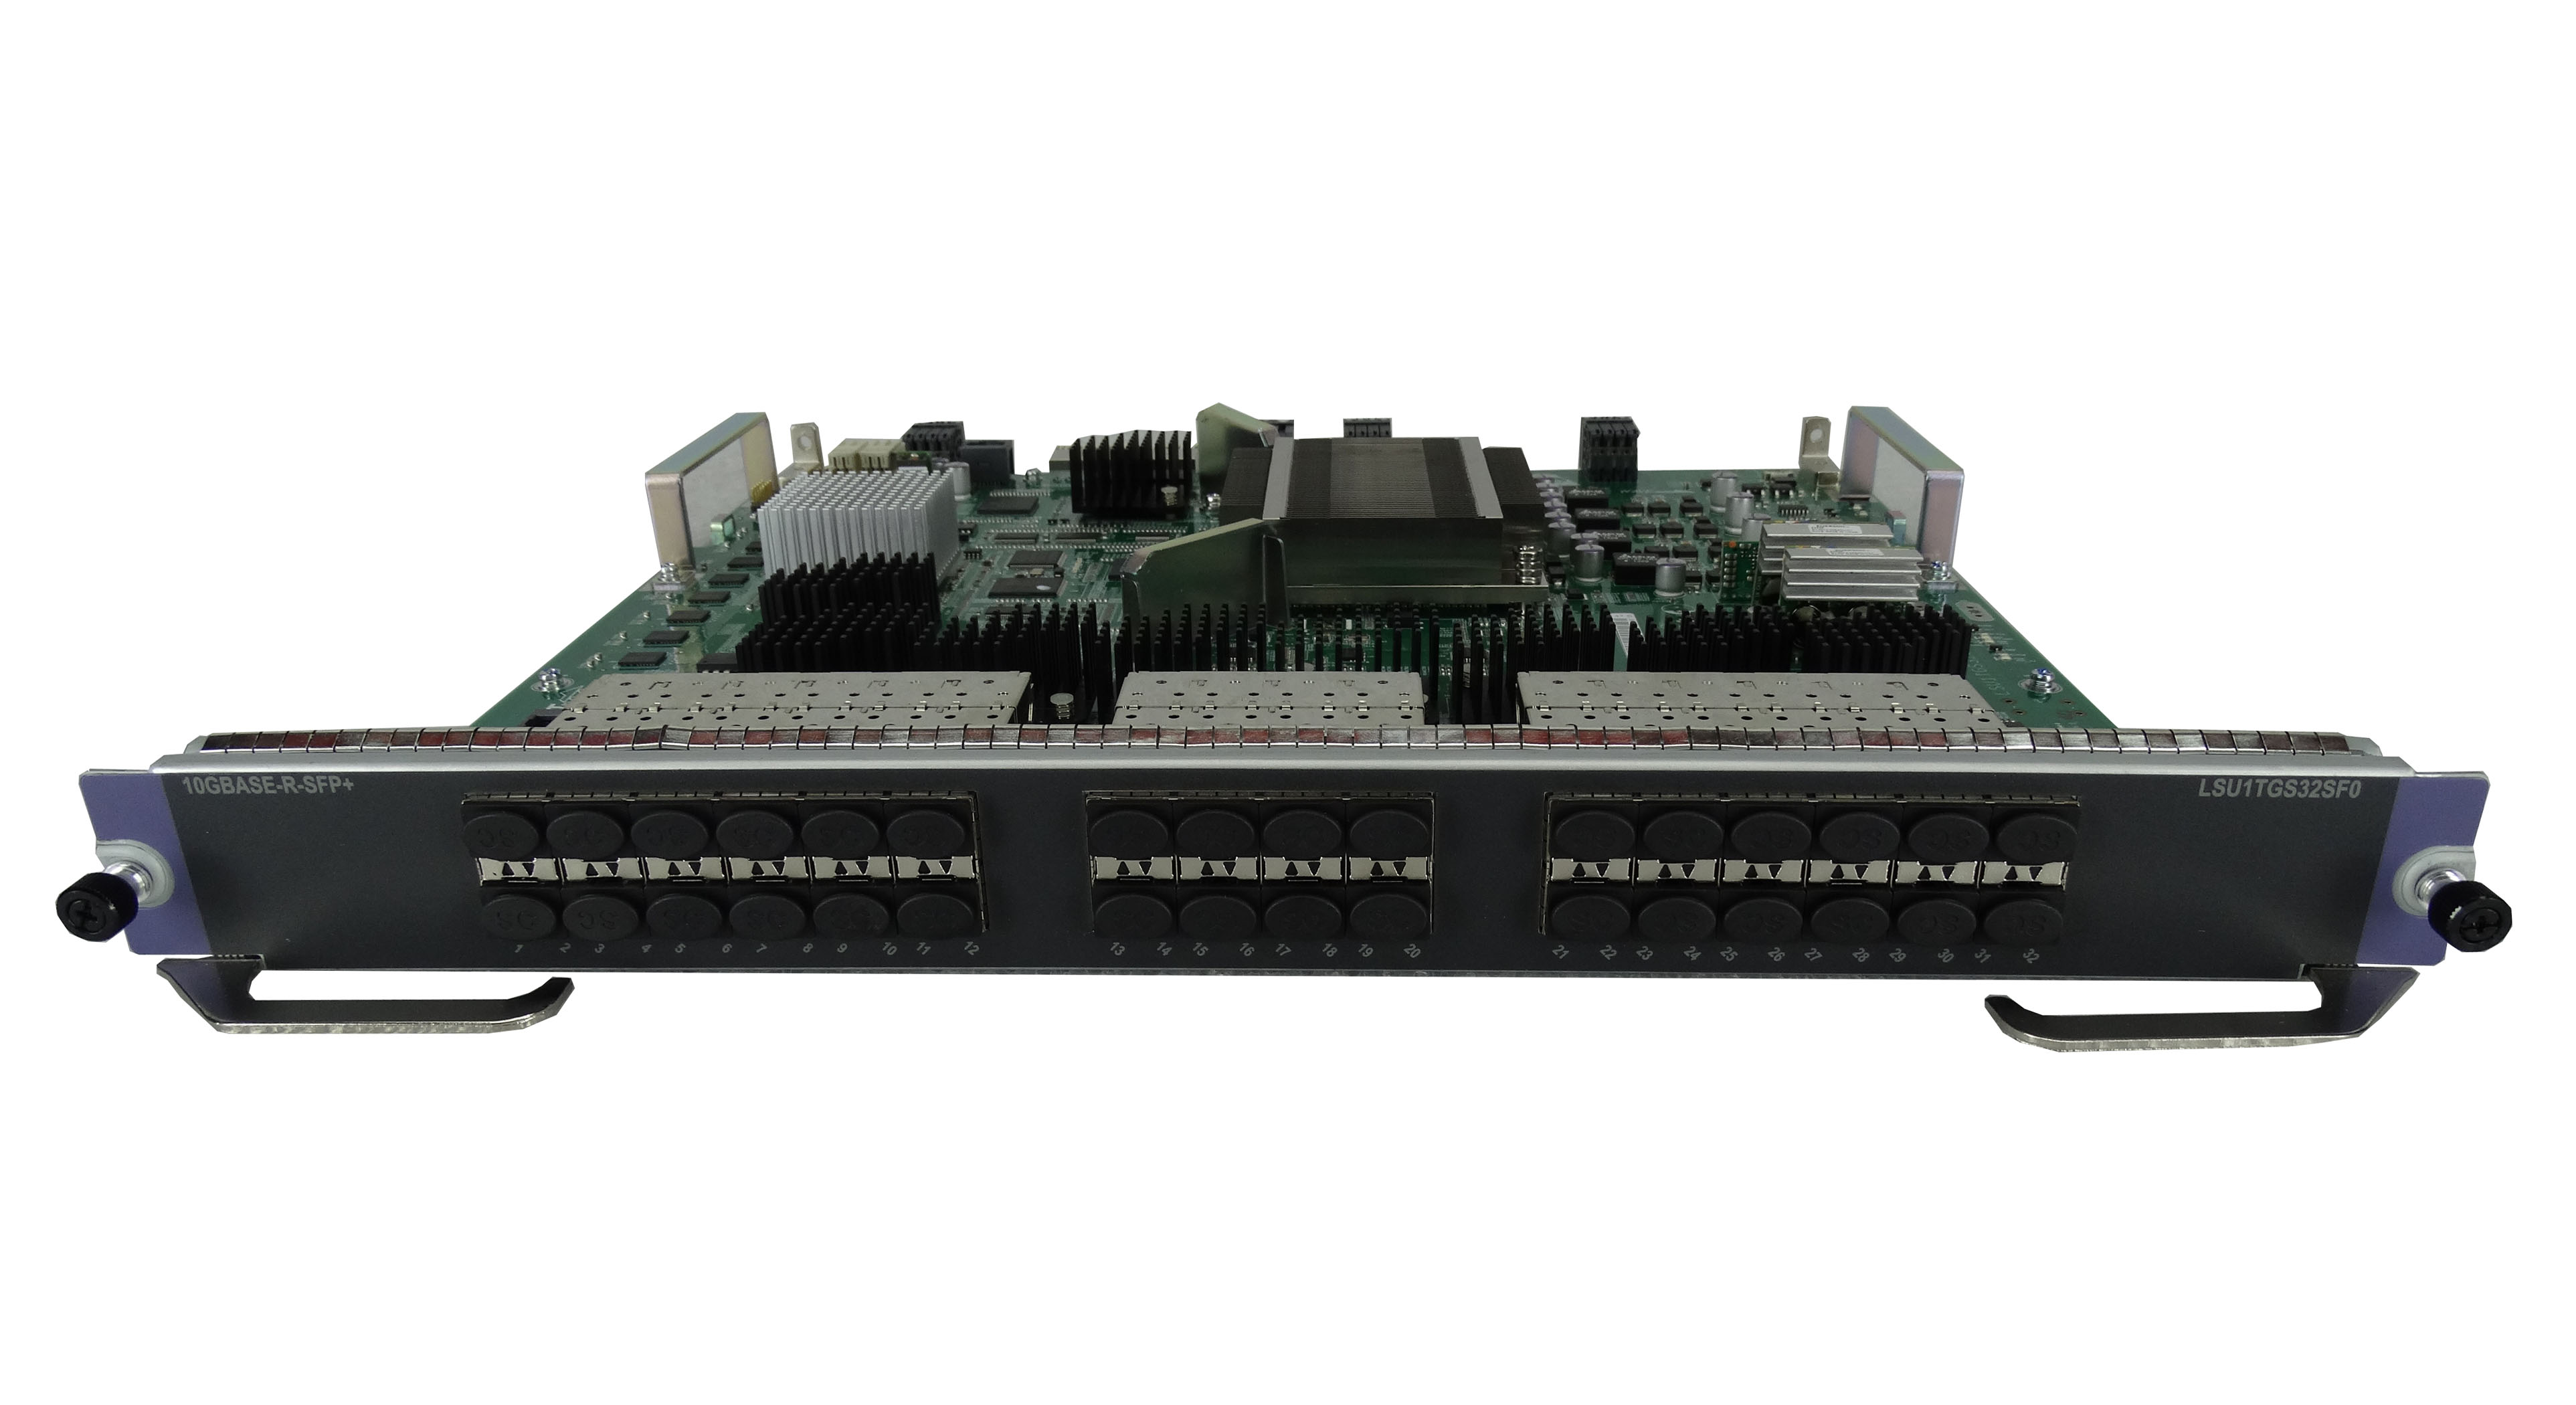 HPe Jc755A Flexnetwork 10500 32-Port 10GBe SFP+ Sf Module (JC755A)